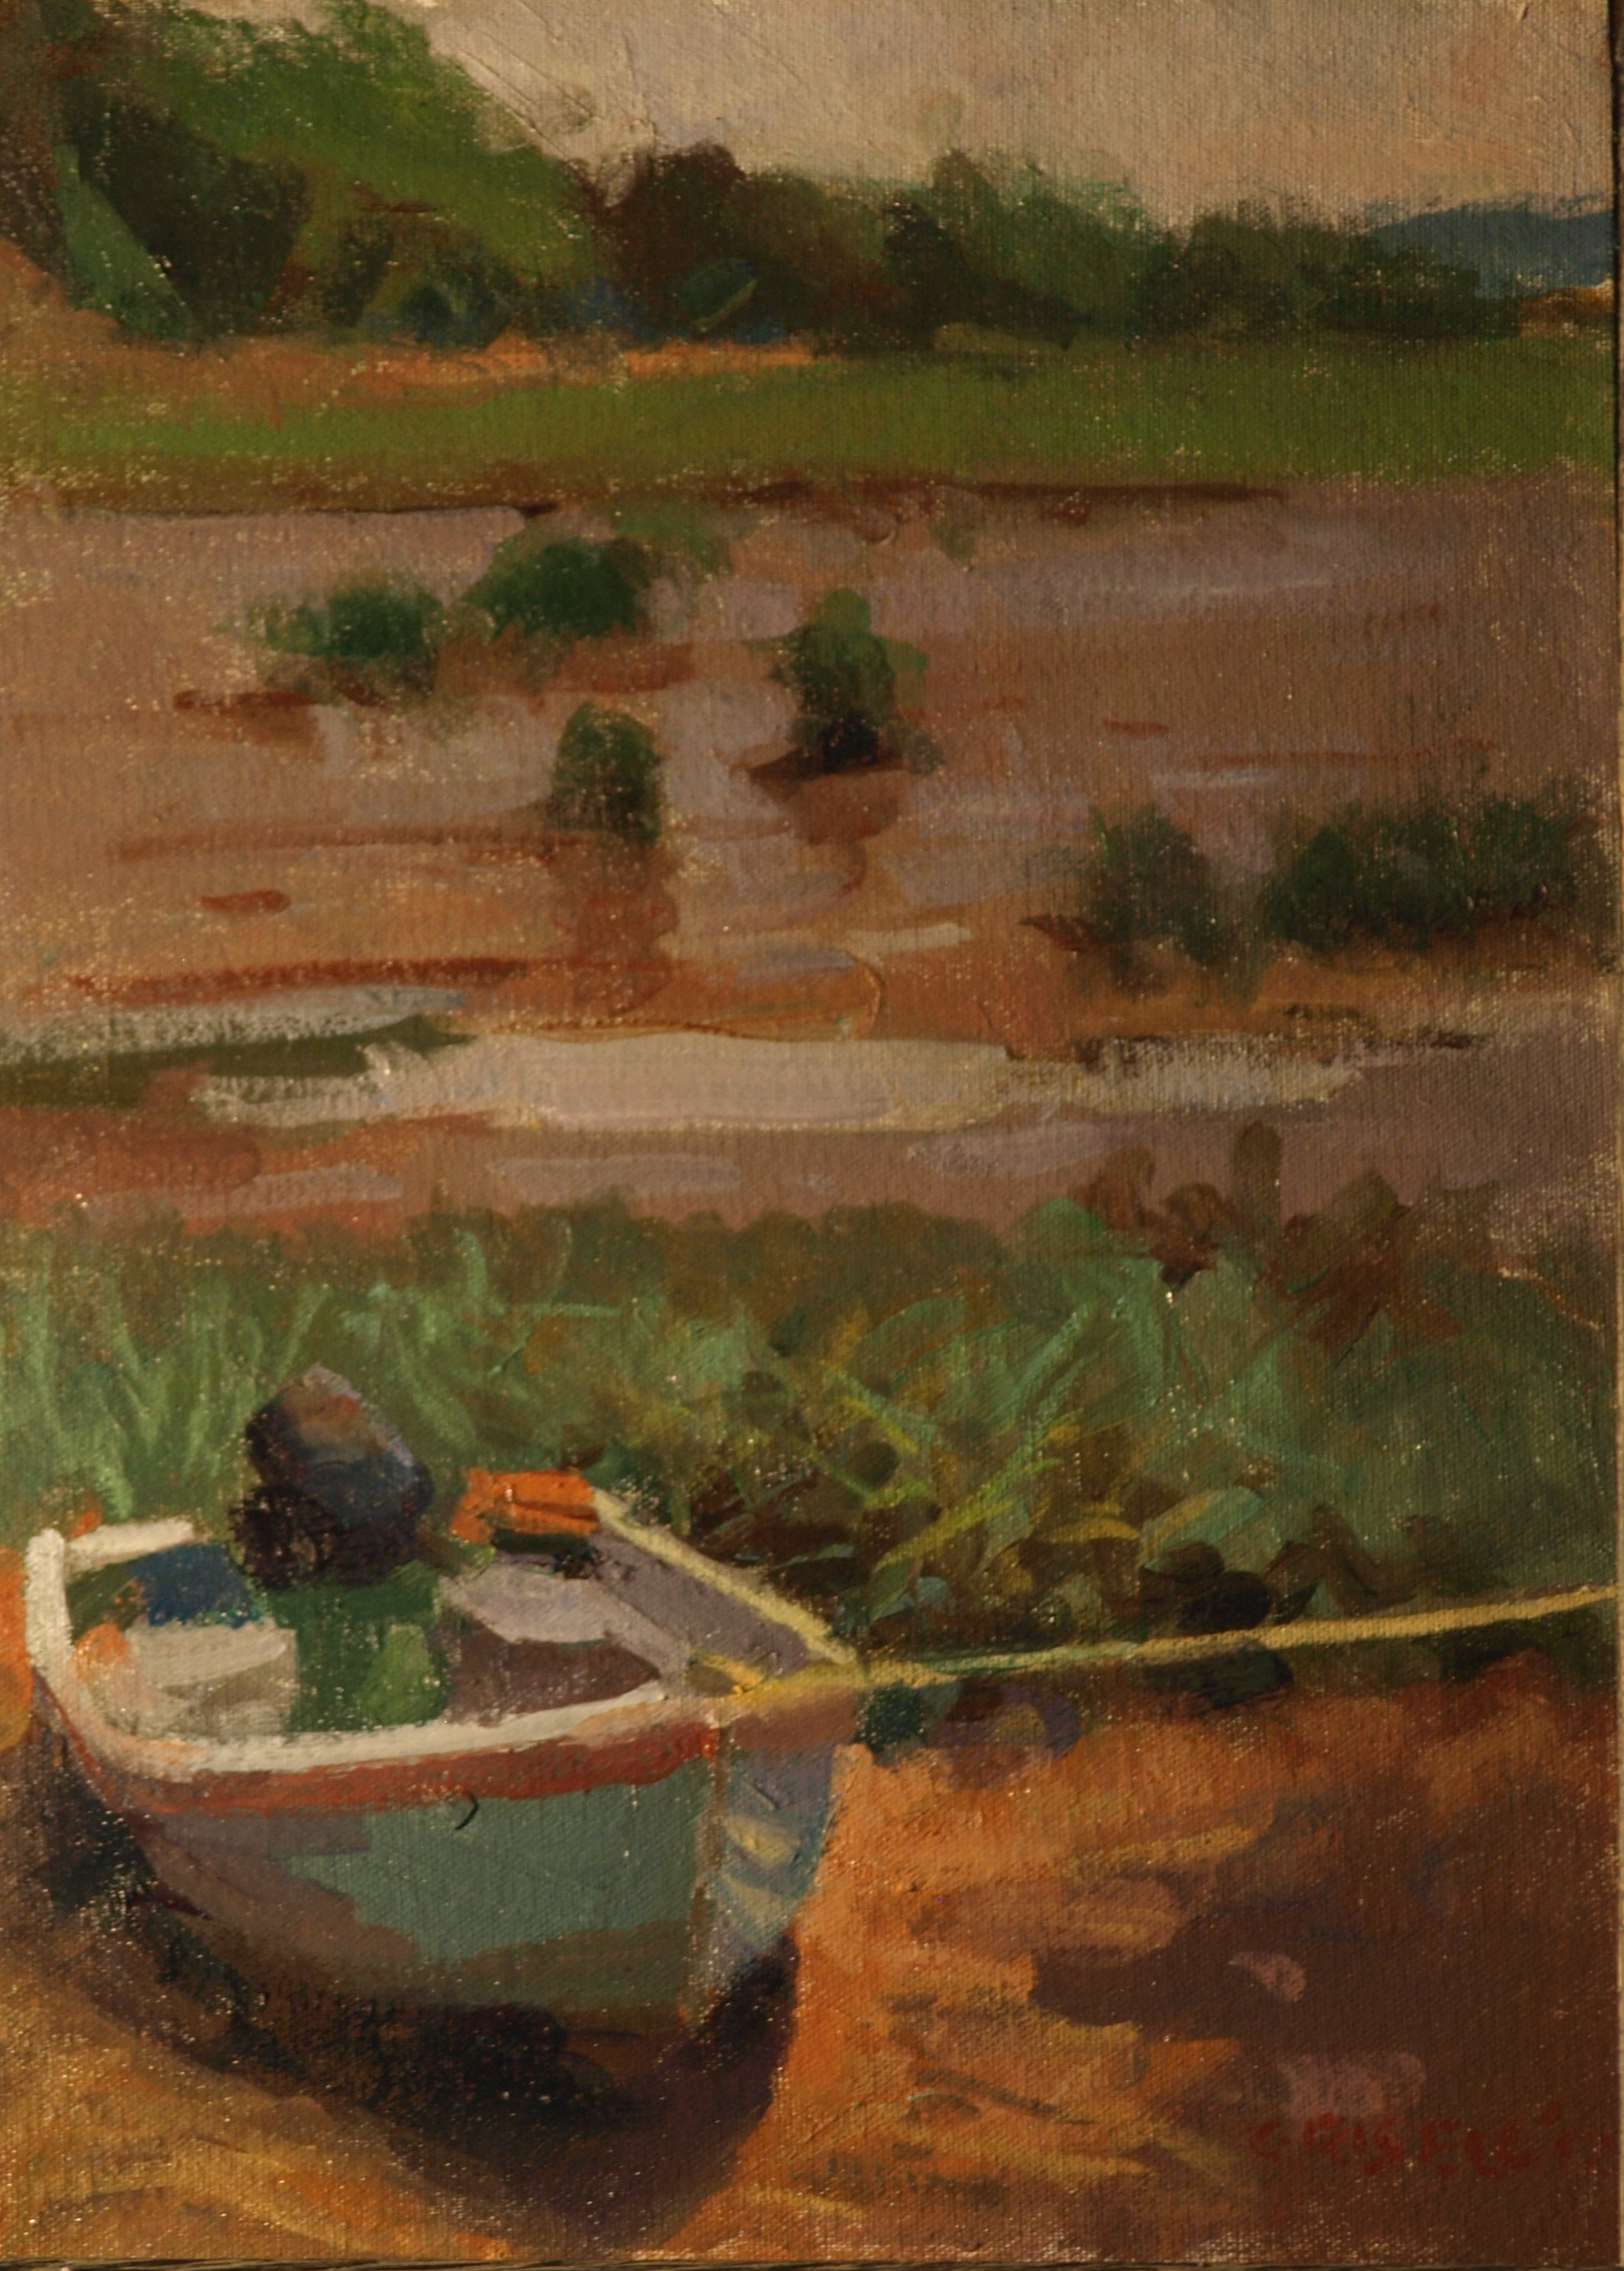 Little Blue Lifeboat, Oil on Canvas on Panel, 16 x 12 Inches, by Susan Grisell, $275